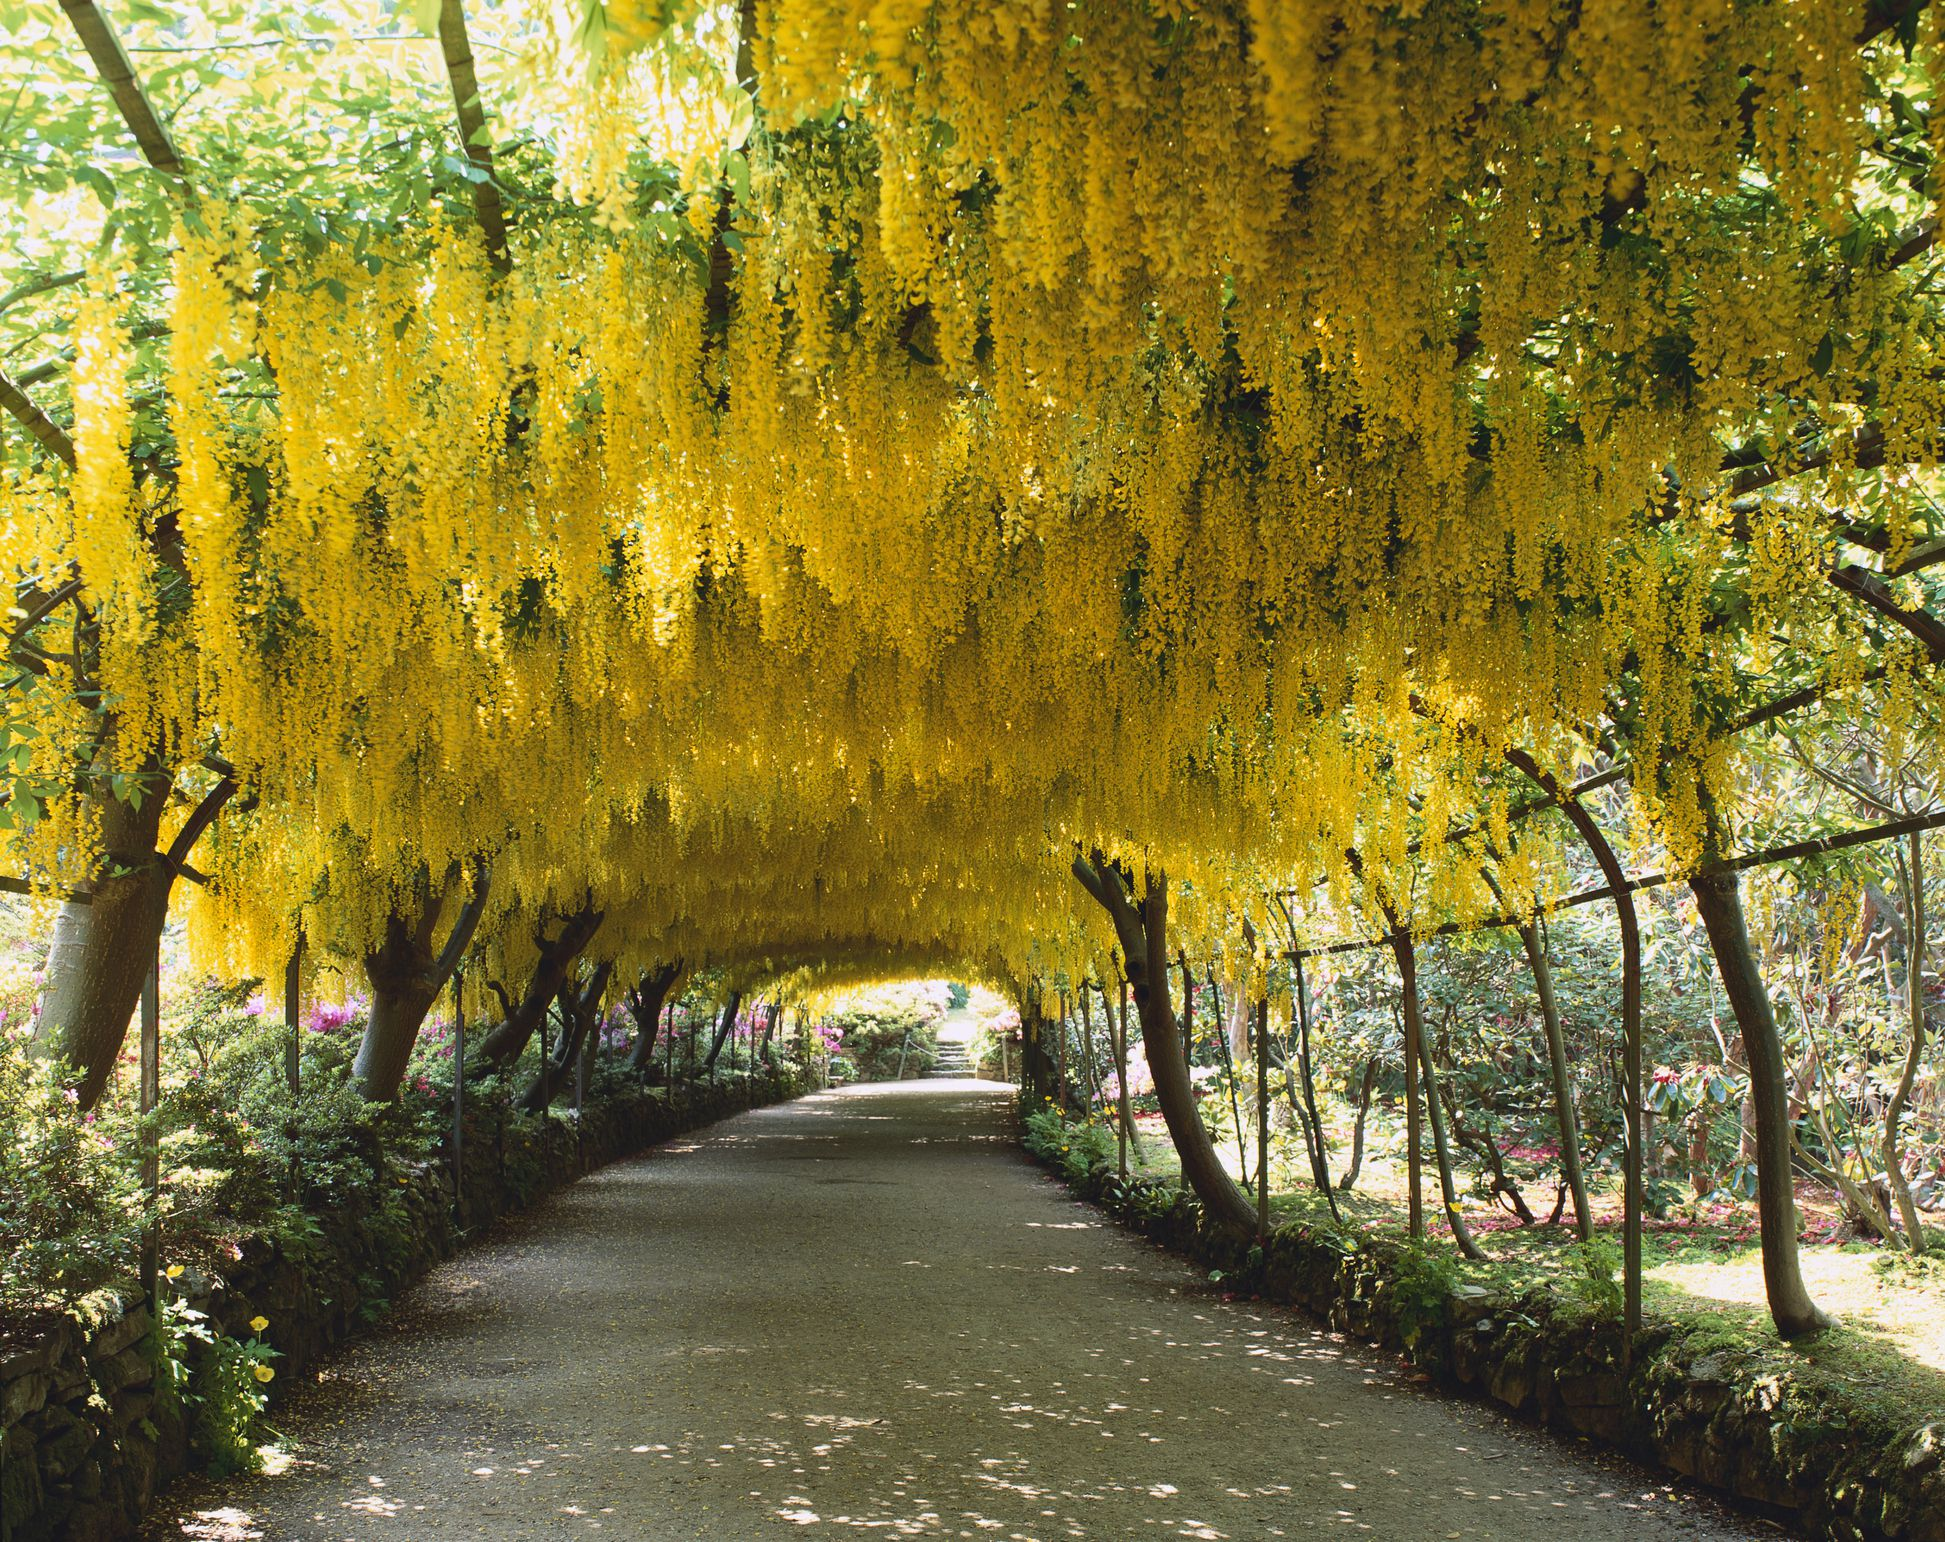 Golden chain trees pleached to form an archway.